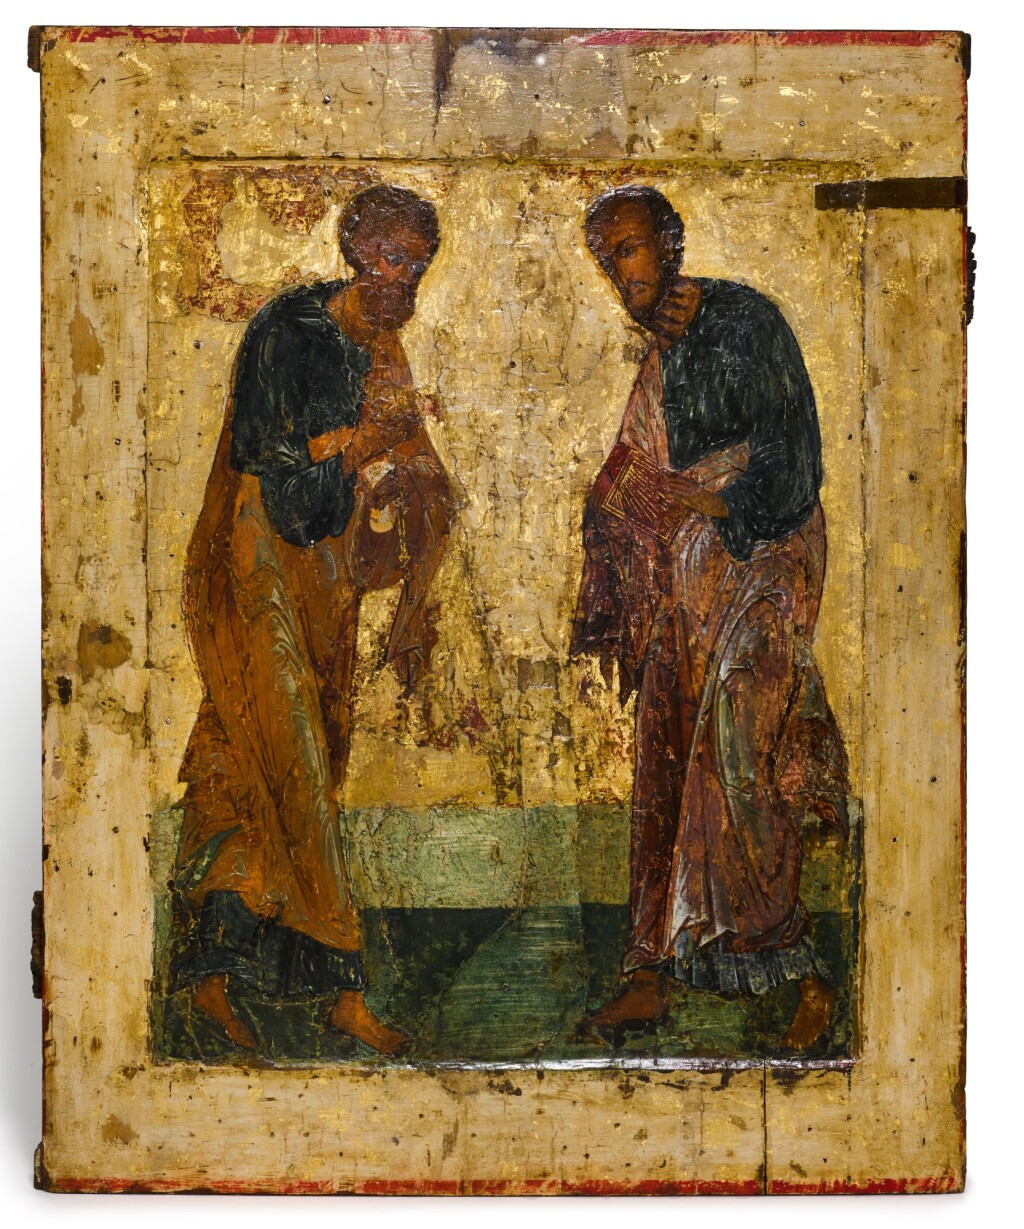 AN ICON OF SAINTS PETER AND PAUL, RUSSIAN SCHOOL, NOVGOROD, LATE 15TH CENTURY